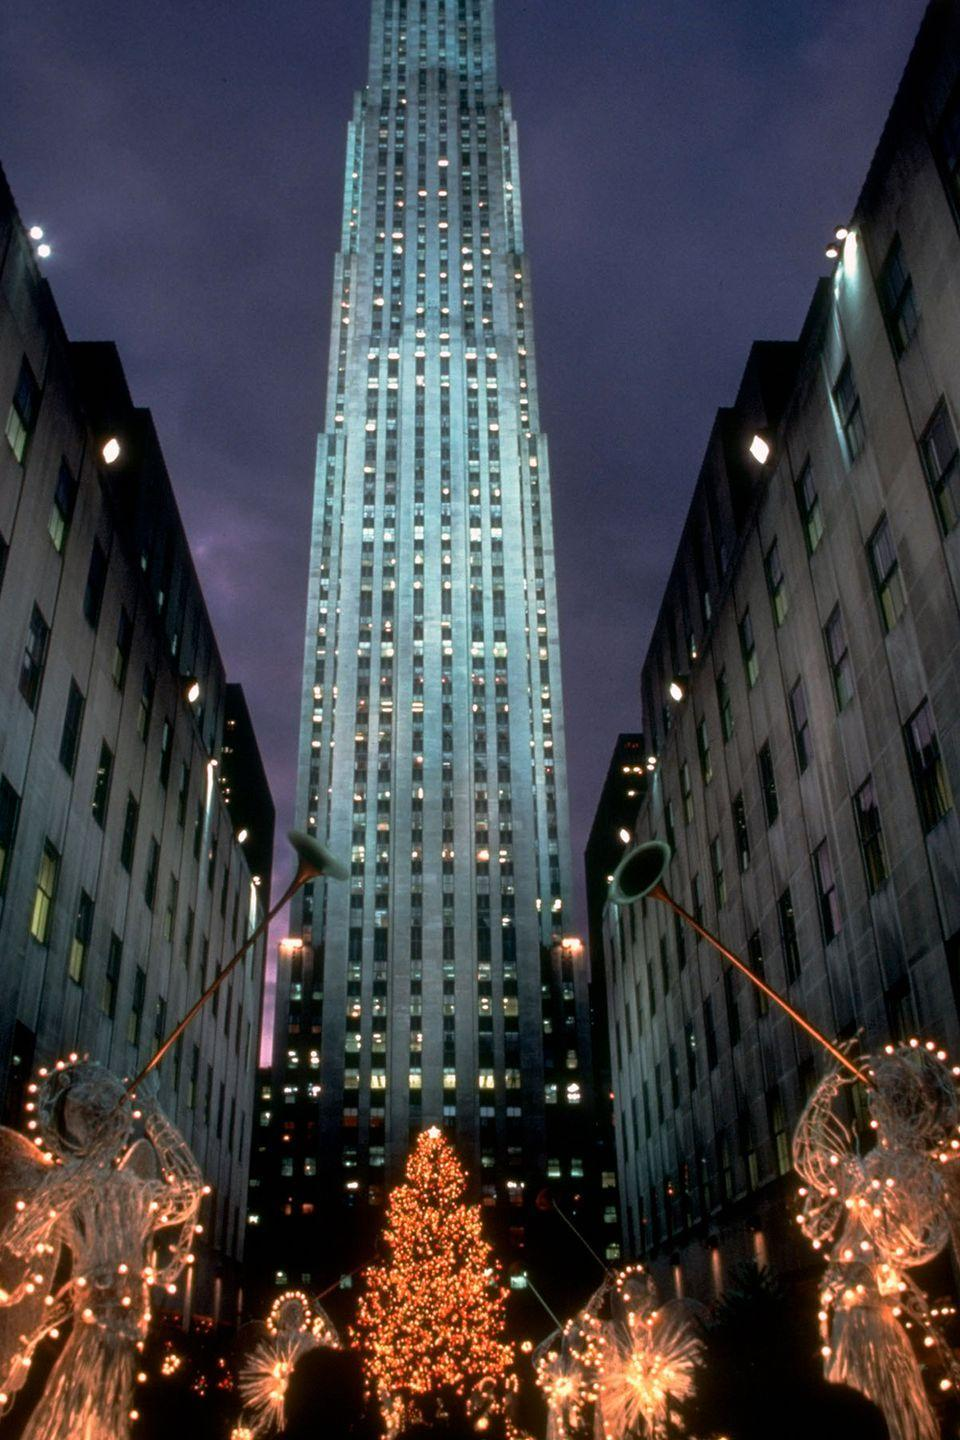 "<p><a href=""https://www.tripadvisor.com/Attraction_Review-g60763-d105123-Reviews-Rockefeller_Center-New_York_City_New_York.html"" rel=""nofollow noopener"" target=""_blank"" data-ylk=""slk:The Rockefeller Center"" class=""link rapid-noclick-resp"">The Rockefeller Center</a> decked out for a decorated Christmas scene at Channel Gardens.</p>"